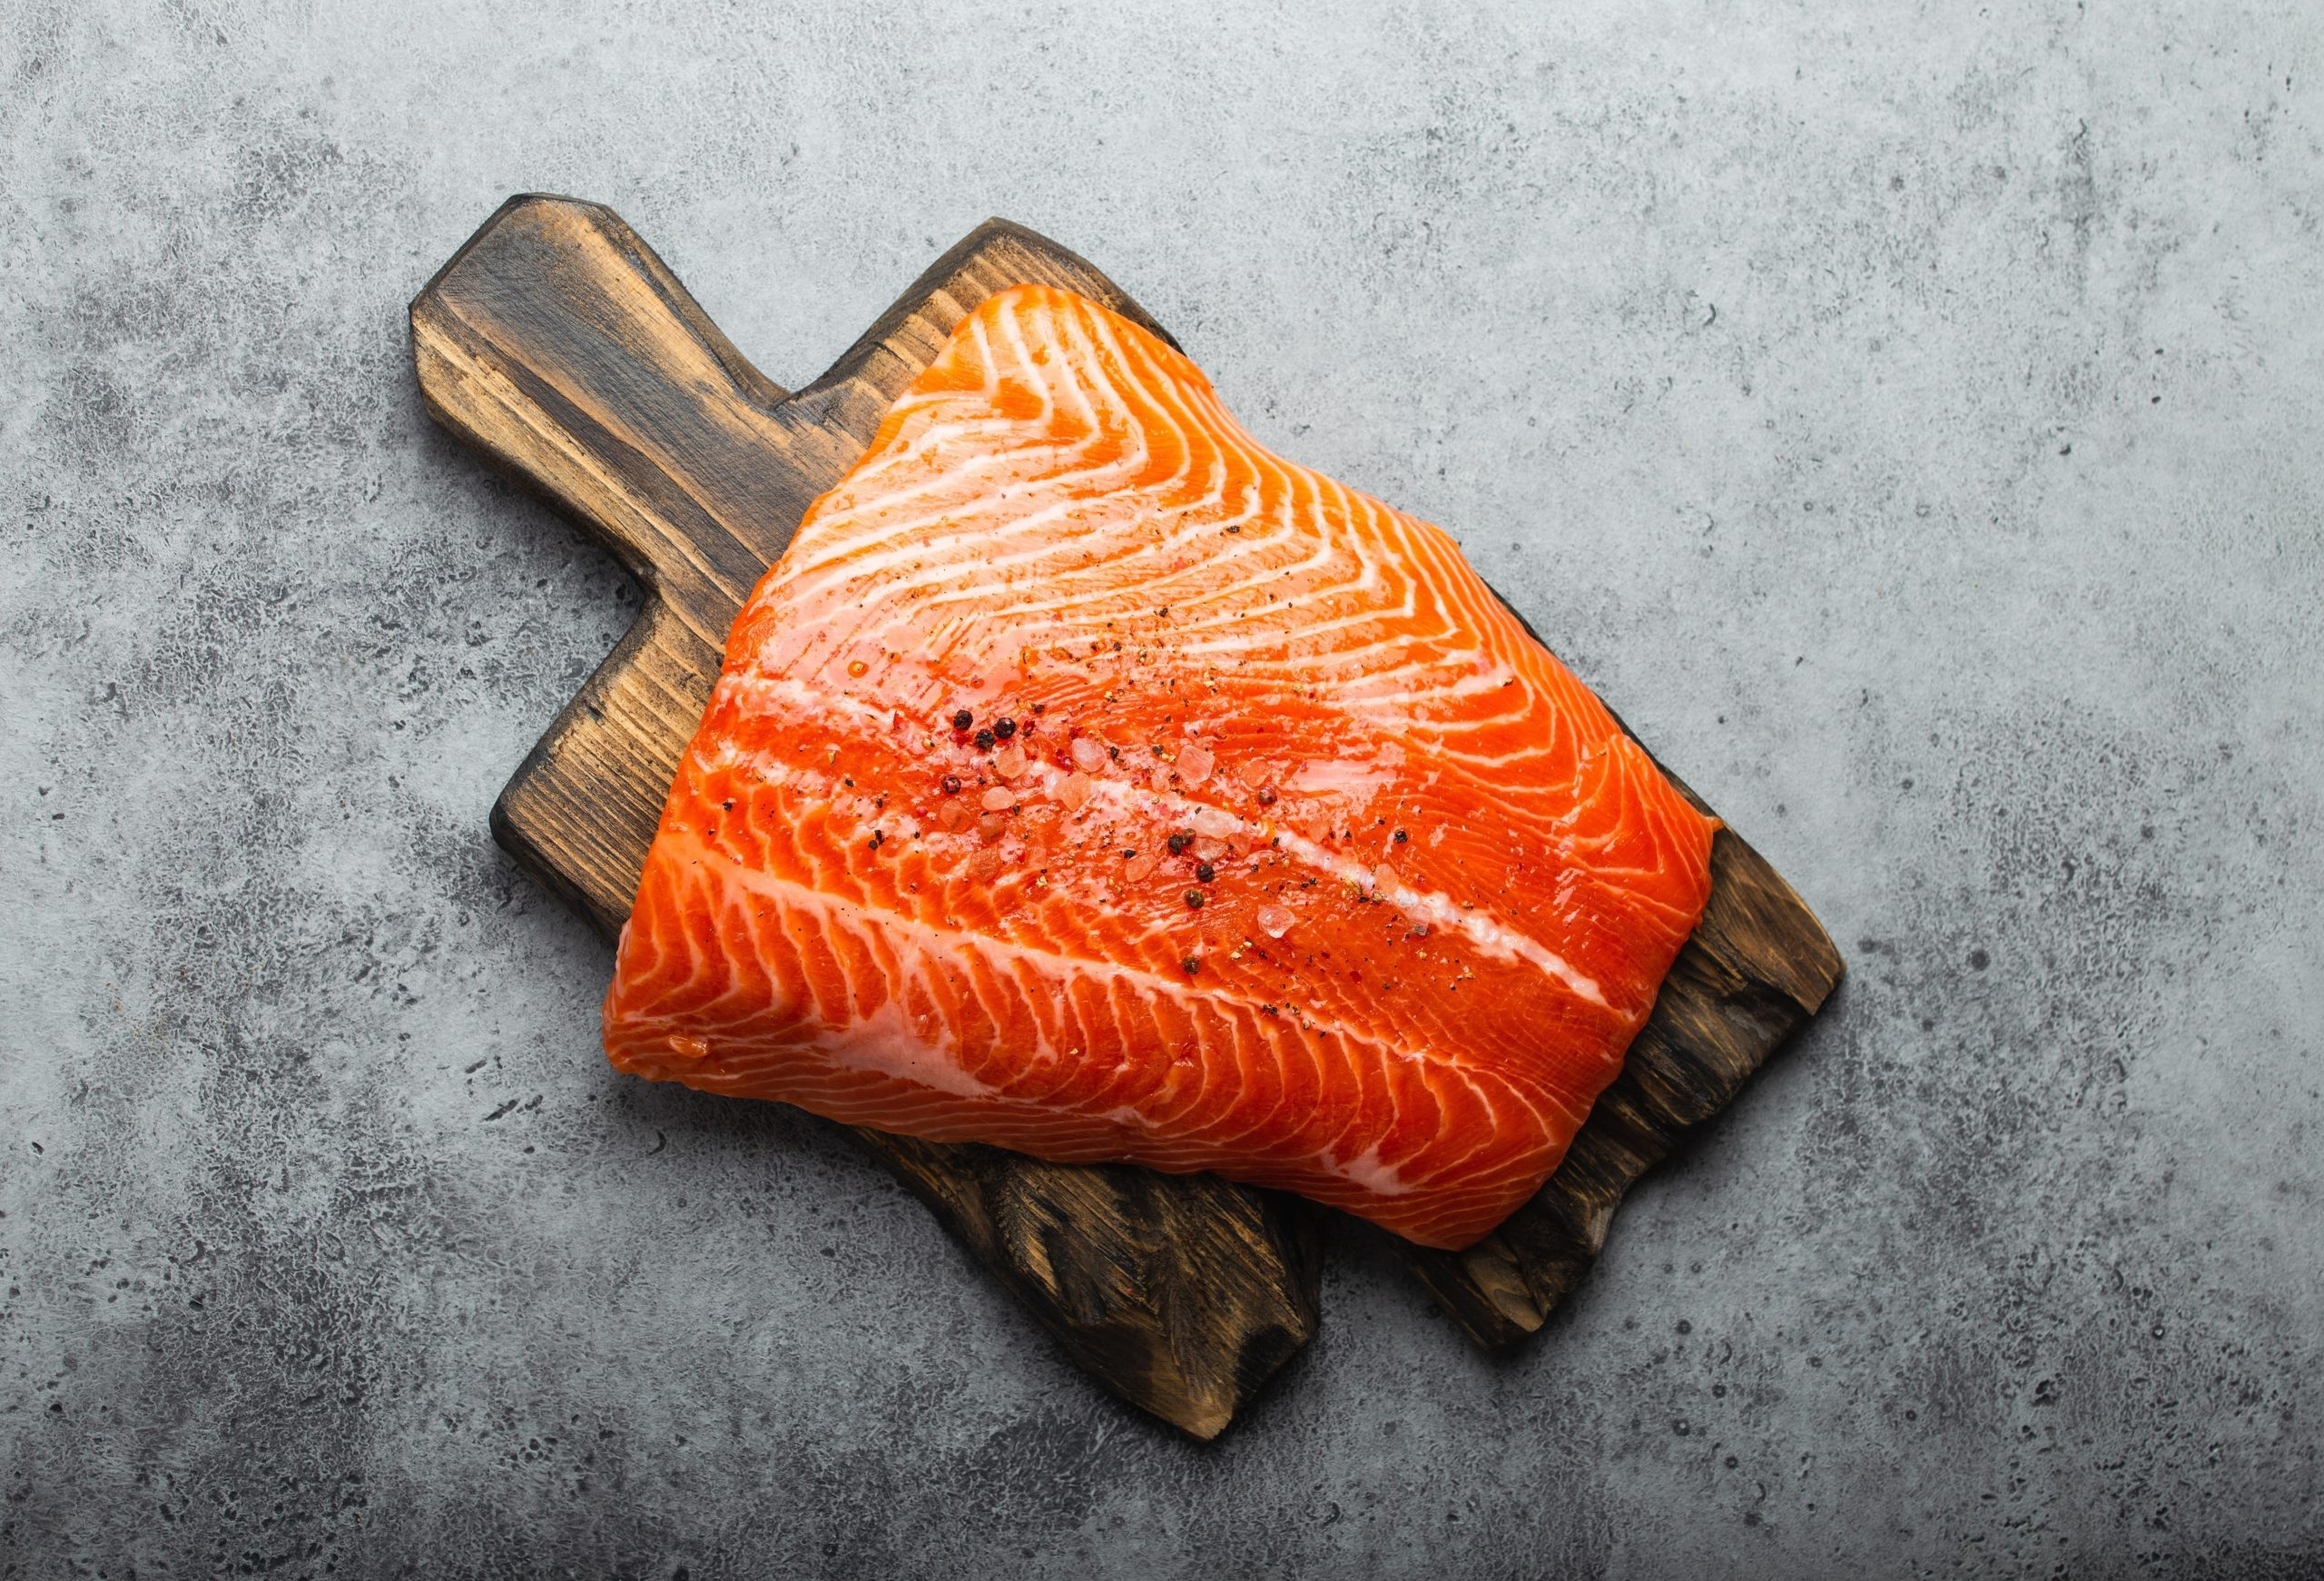 build muscle | fresh raw salmon fillet with seasonings on wooden board, gray stone background. Preparing salmon fillet for cooking, healthy eating concept